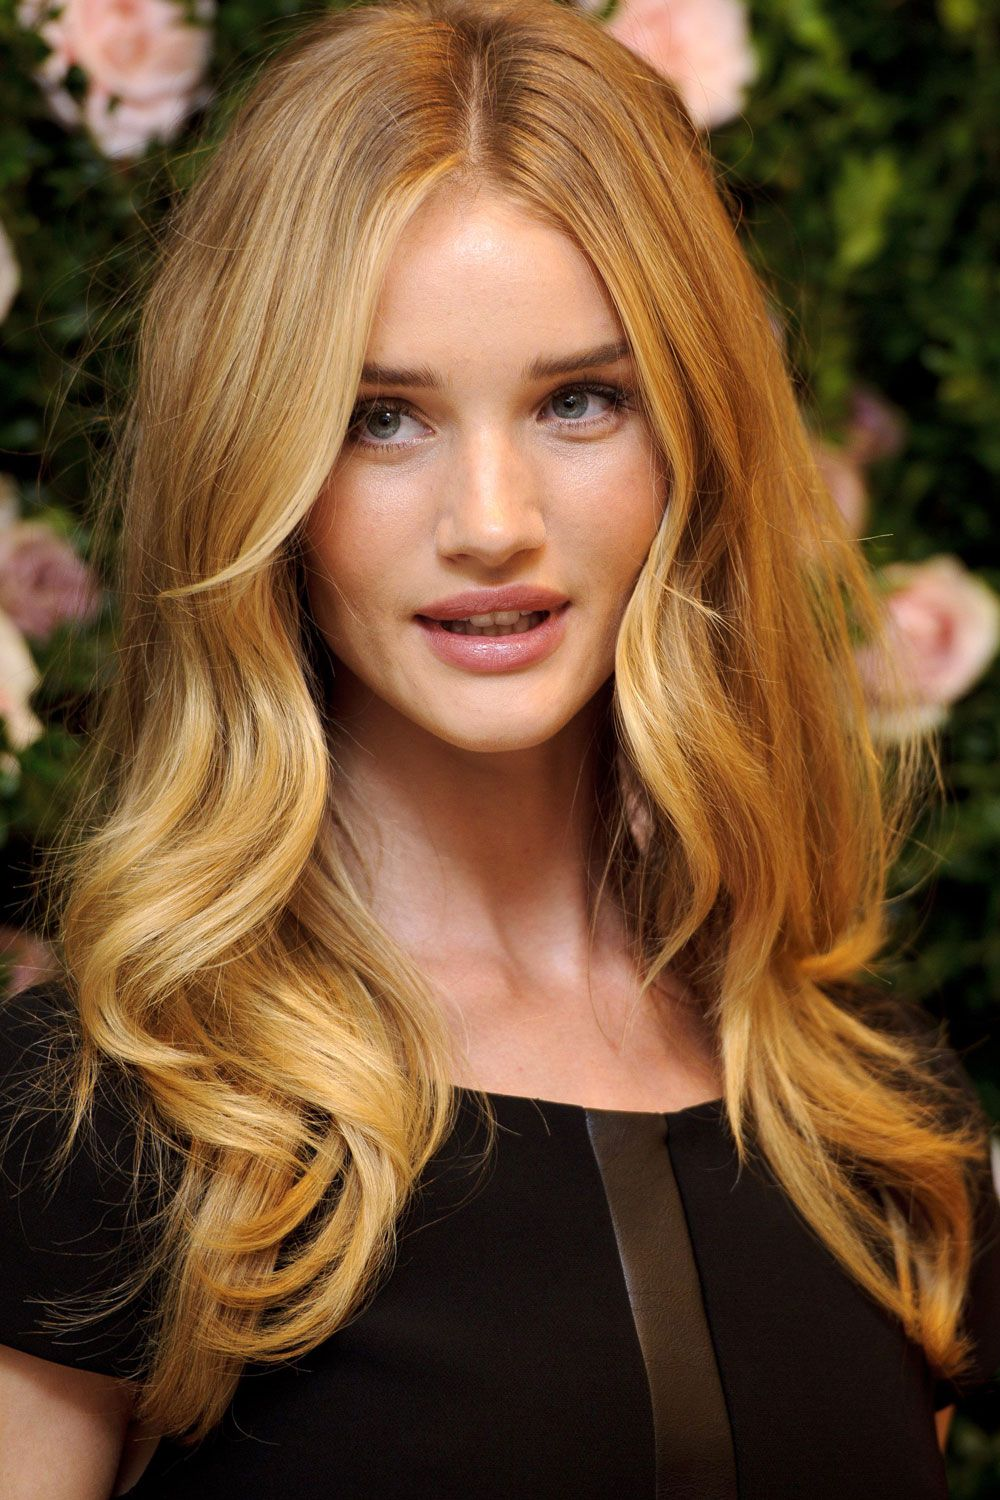 Frisuren Herbst Und Winter 2016 2017 Pinterest